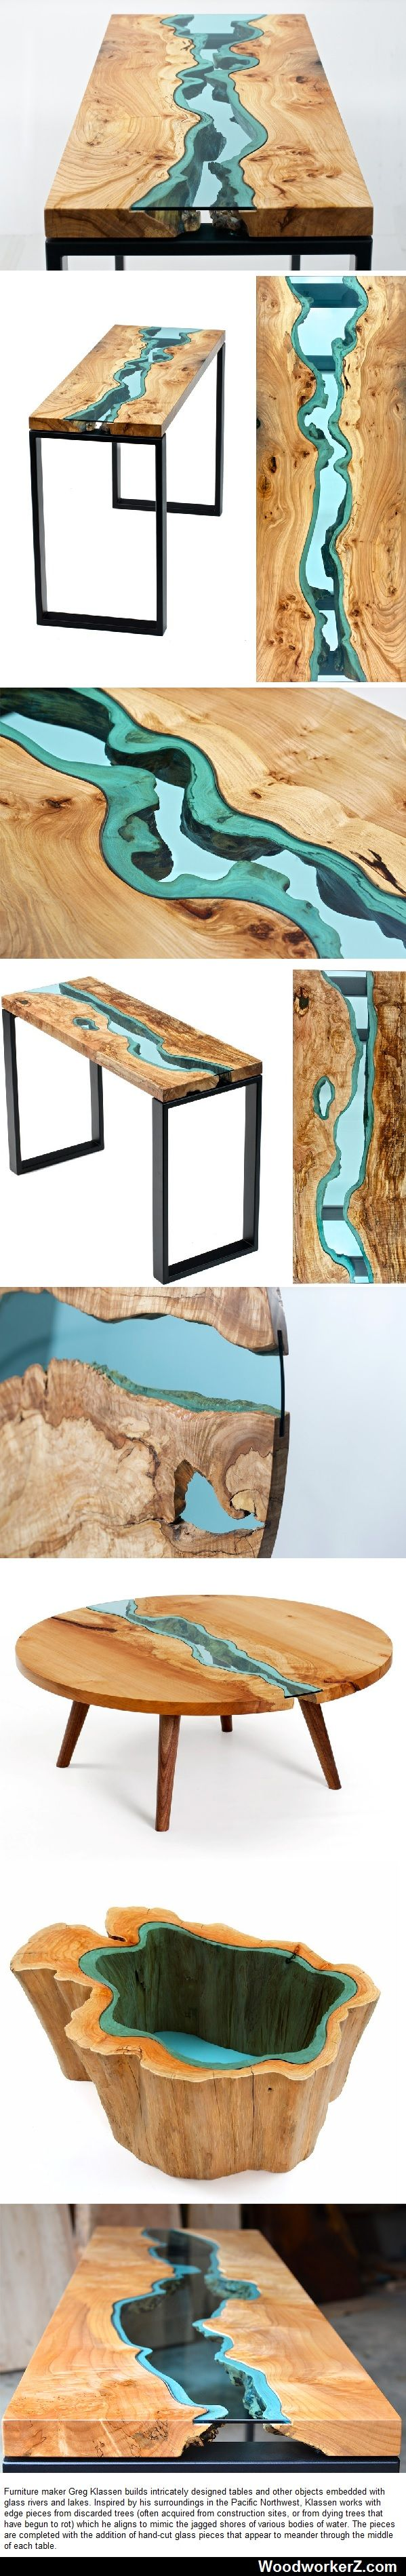 Maybe As The Countertop For Bar Seating Or A Dining Table. Wood Furniture  Embedded With Teal Glass